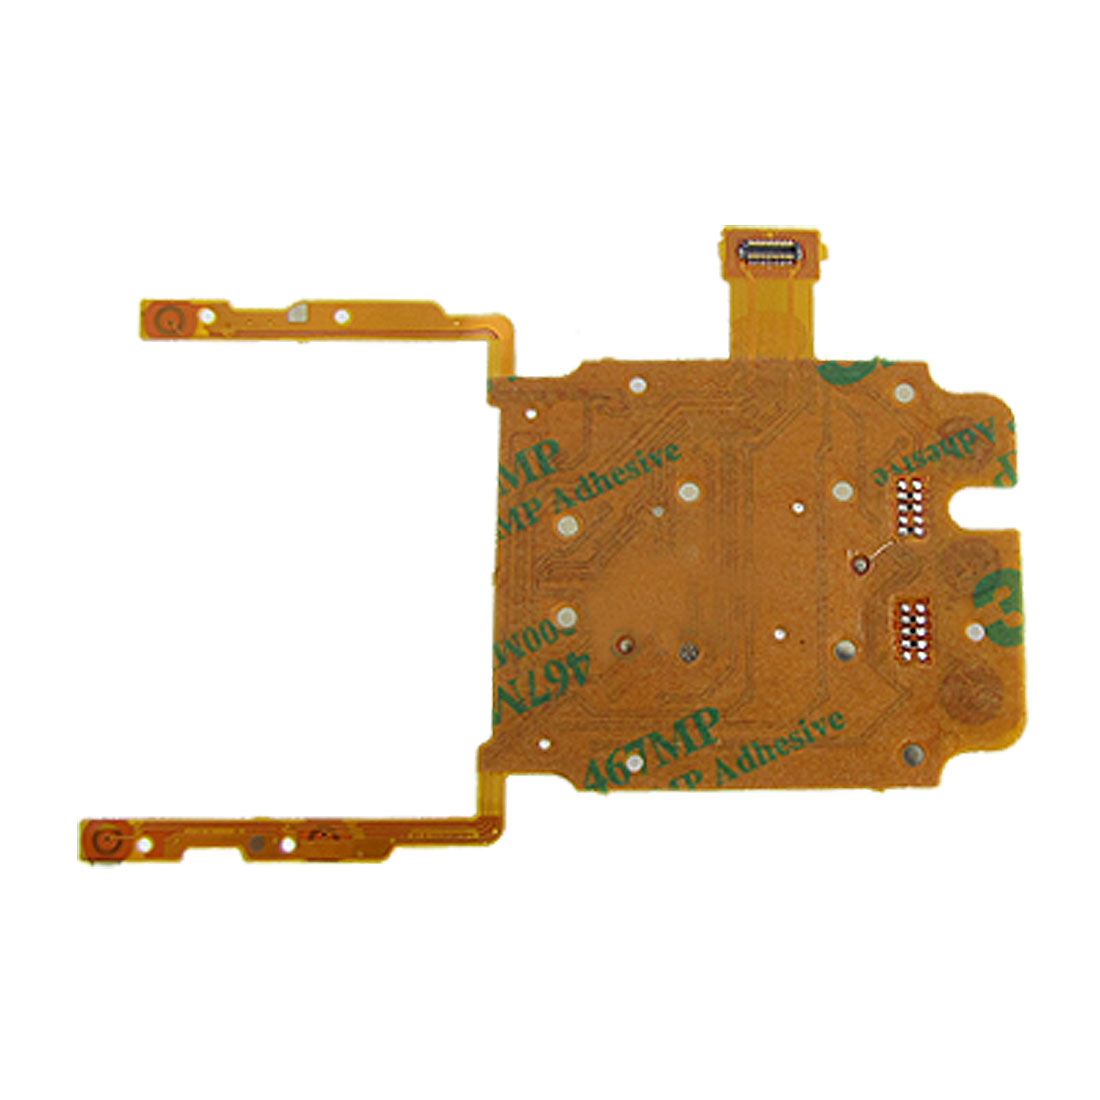 Replacement Keypad Membrane Board for Nokia 6730